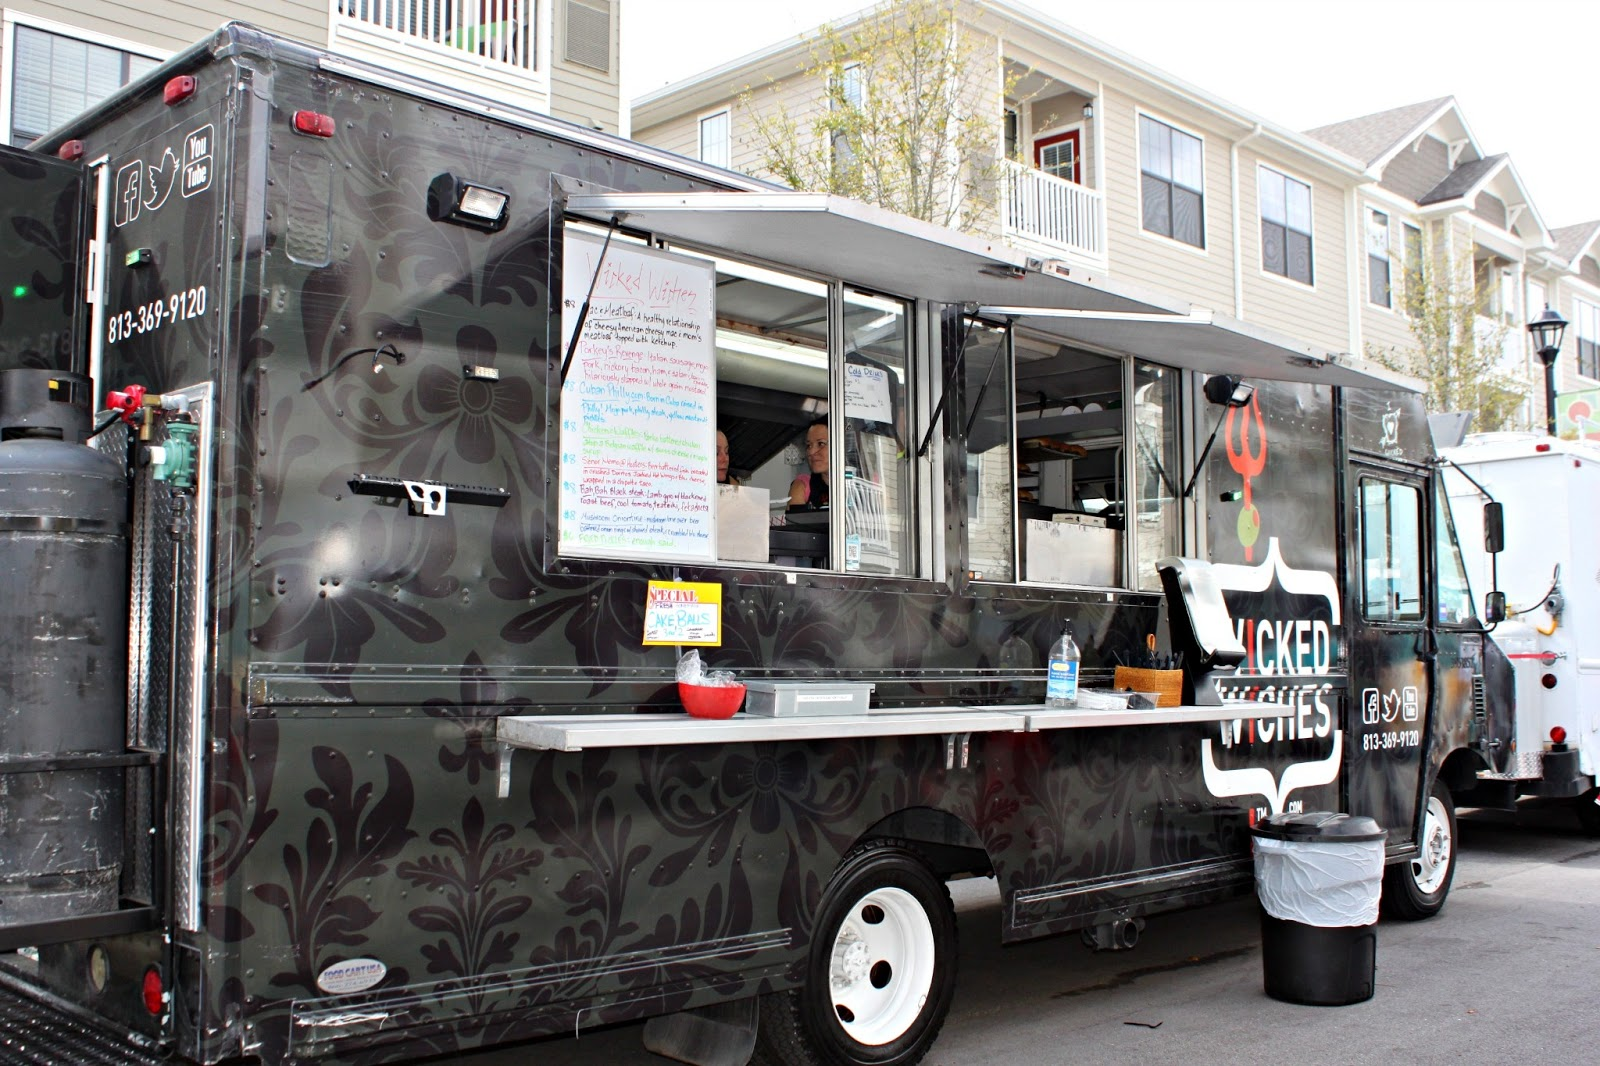 Food truck fun in citrus park the foodie patootie for Food truck plans